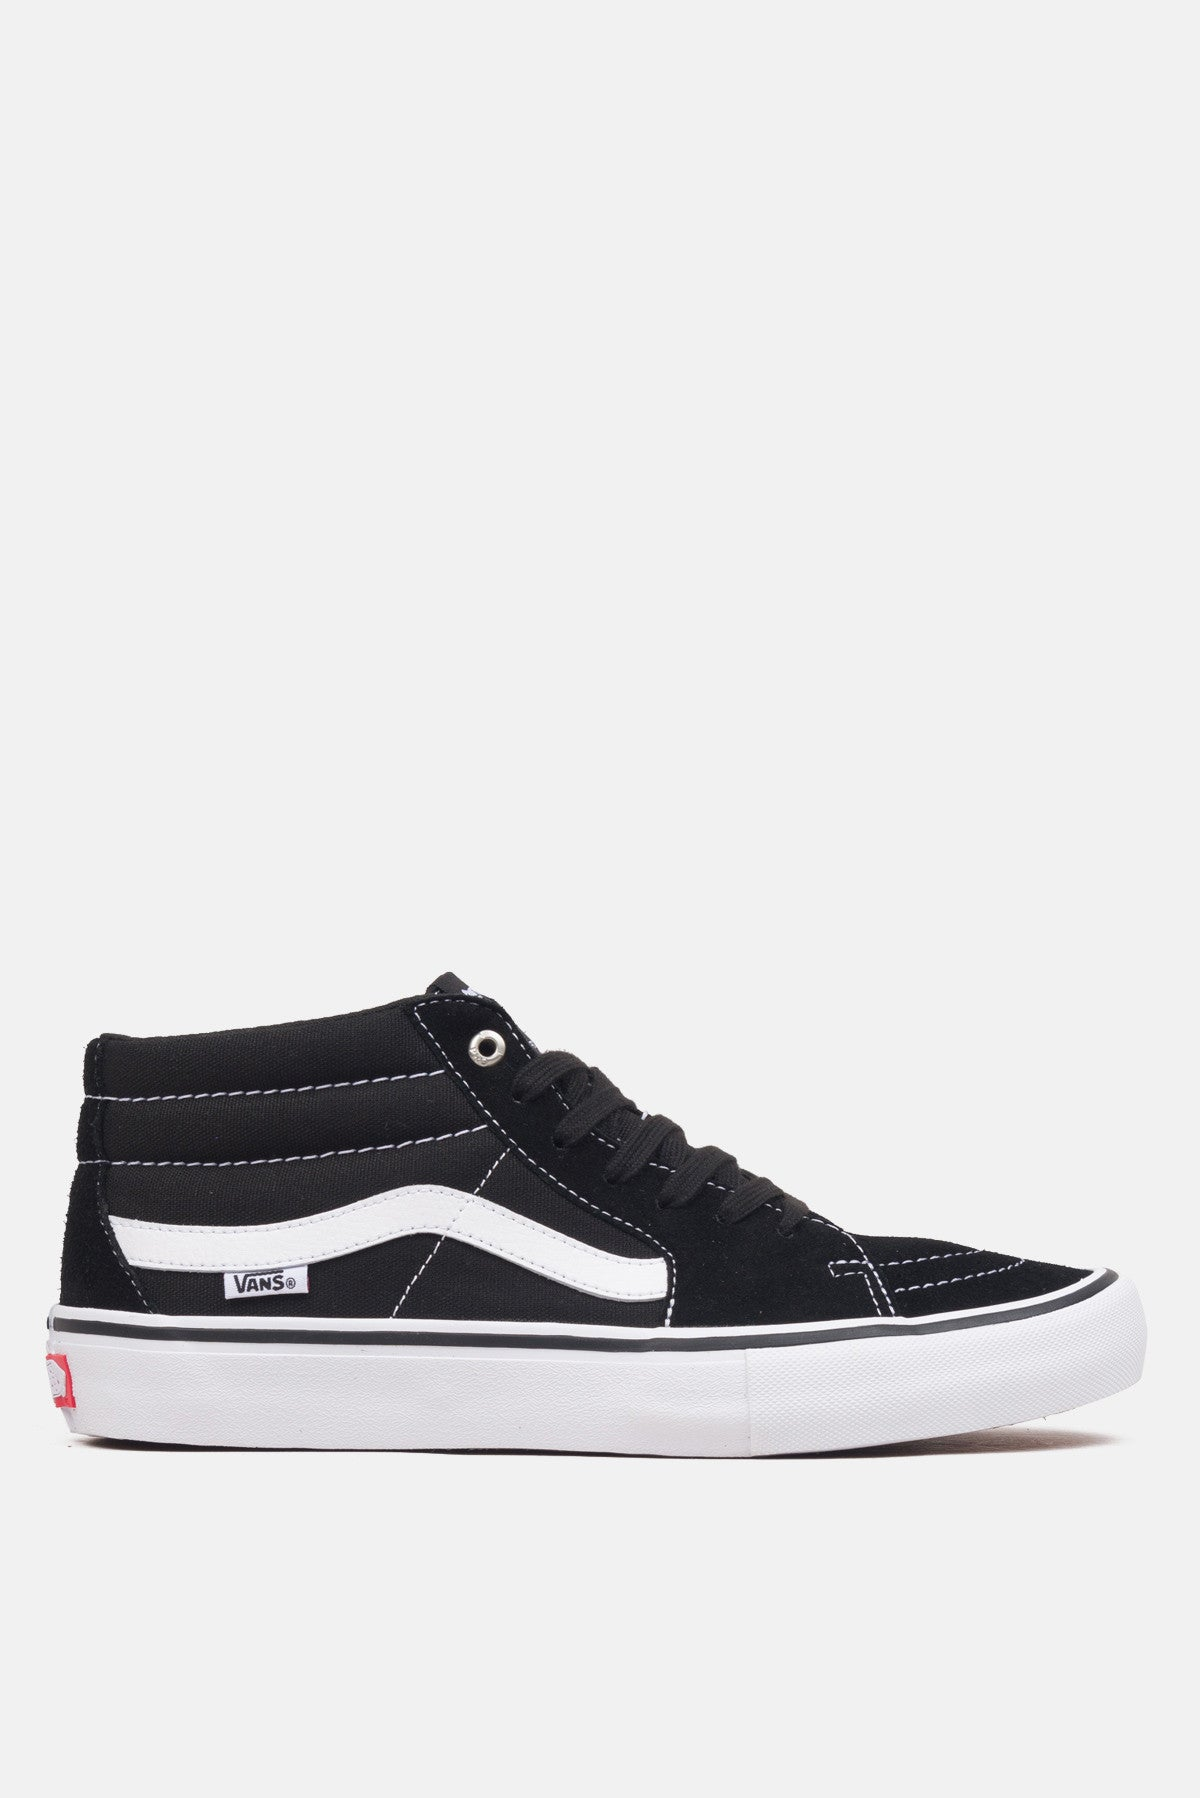 d373ca5e0e Vans Sk8 Mid Pro Shoes available from Priory